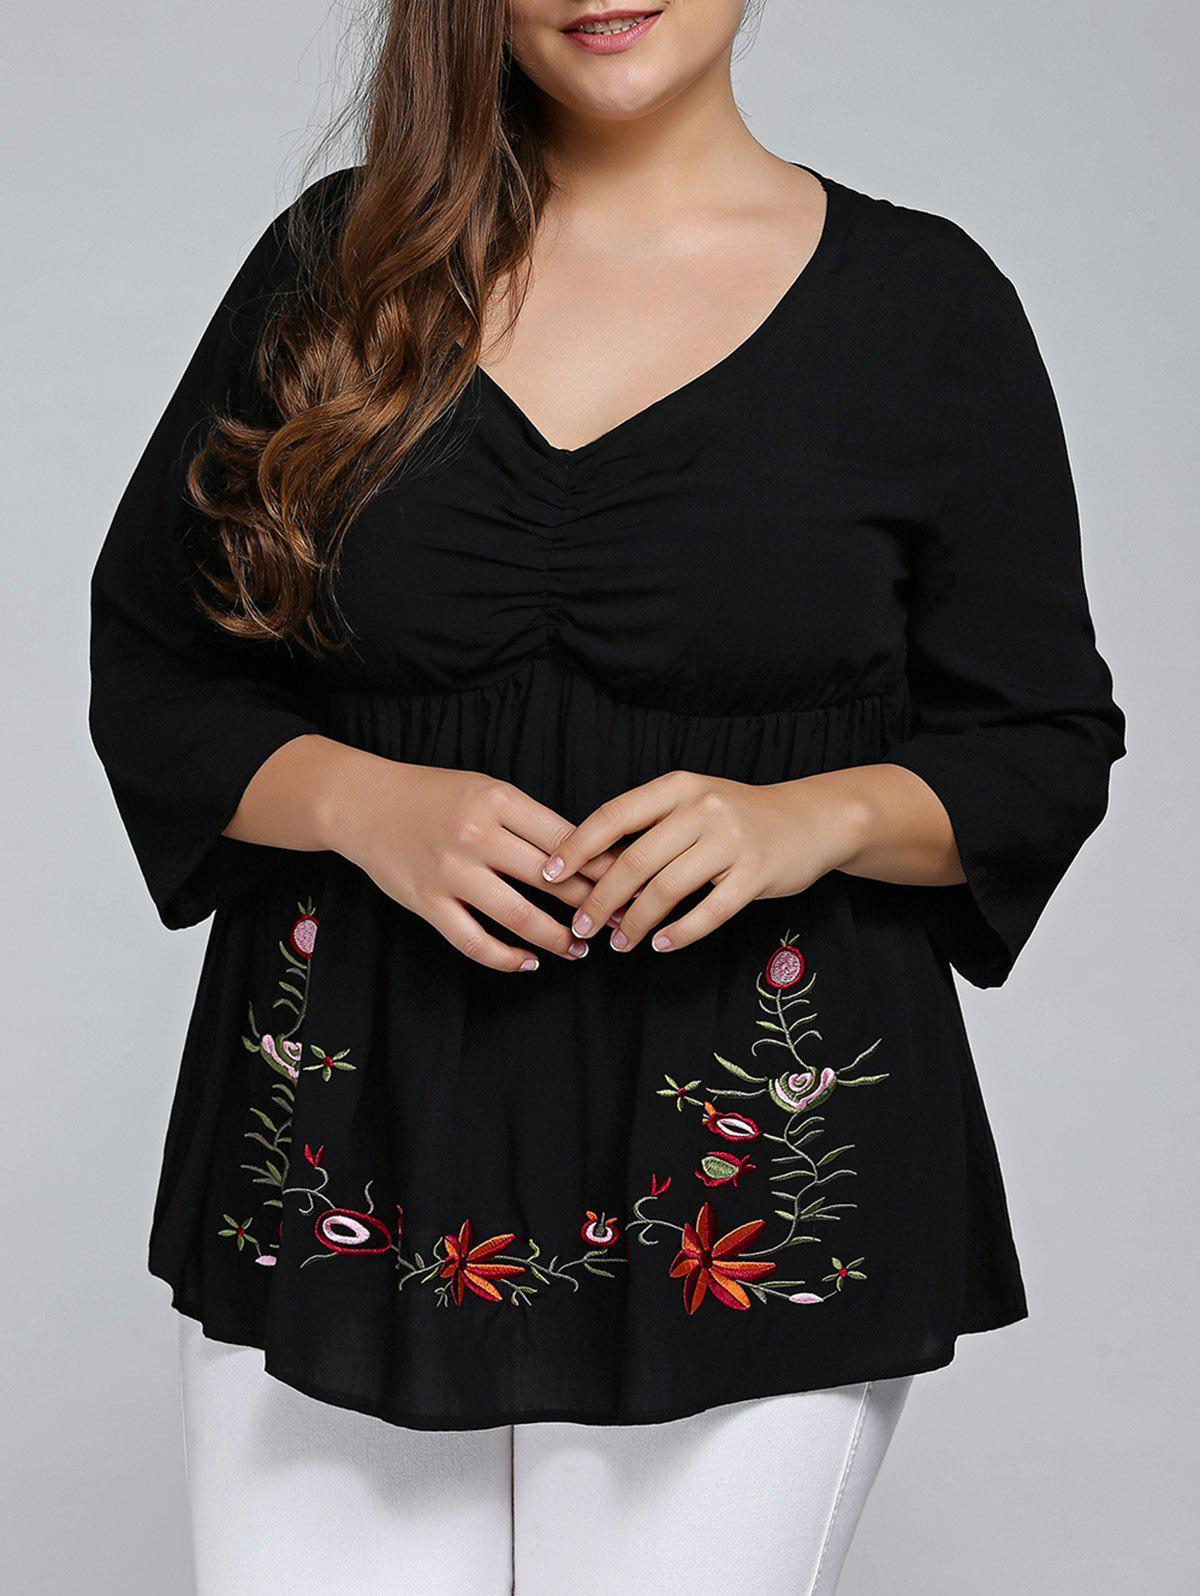 Plus Size 3/4 Sleeve V Neck Embroidered T-Shirt - BLACK XL